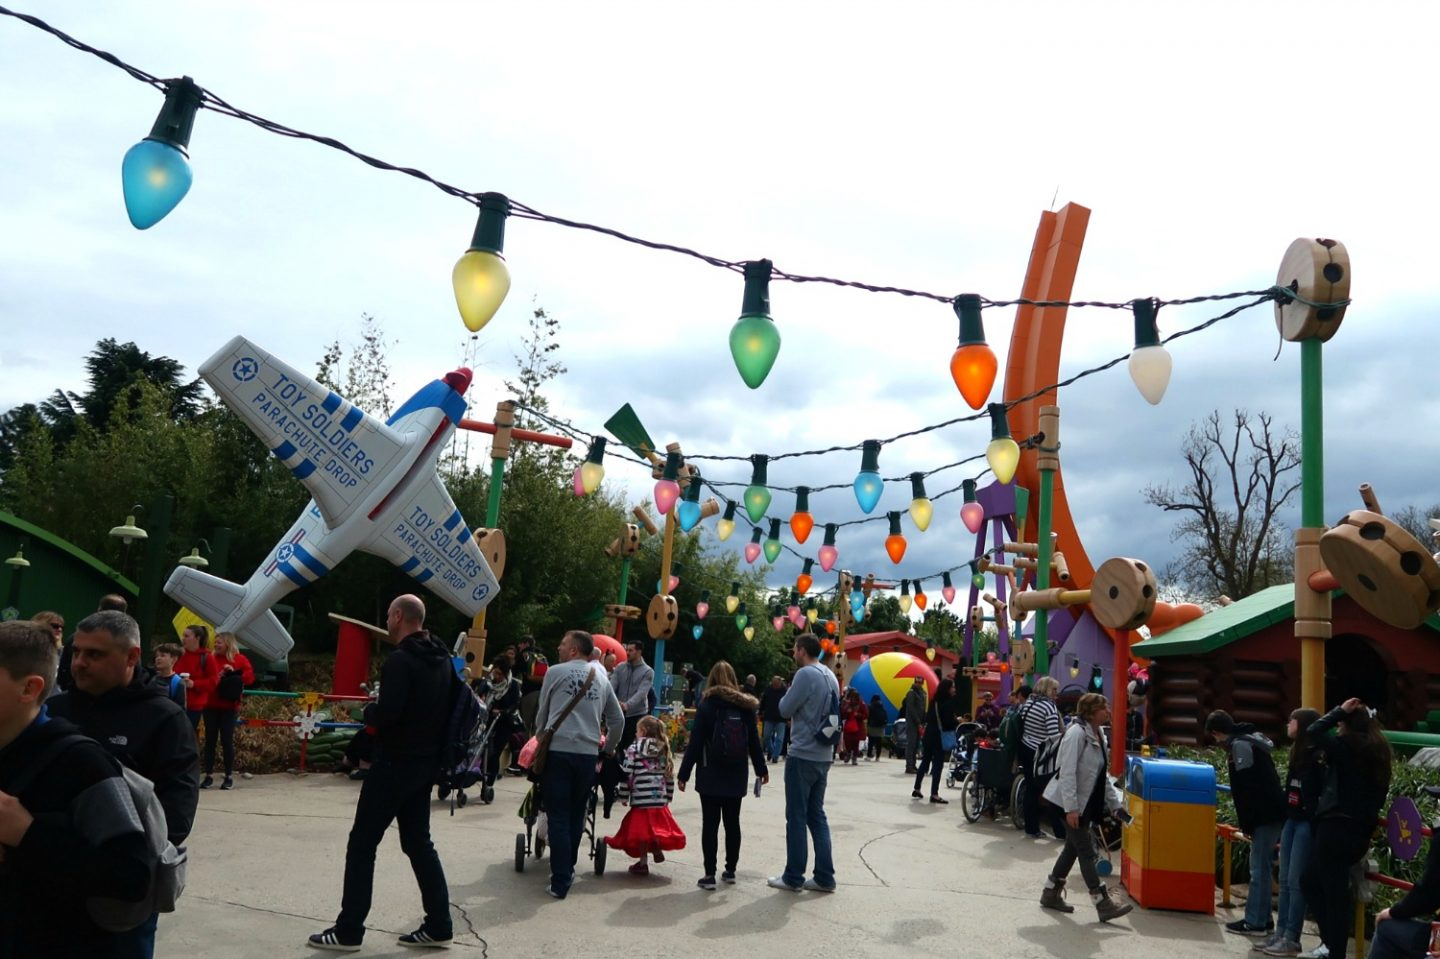 Toy Story play land at Disneyland Paris